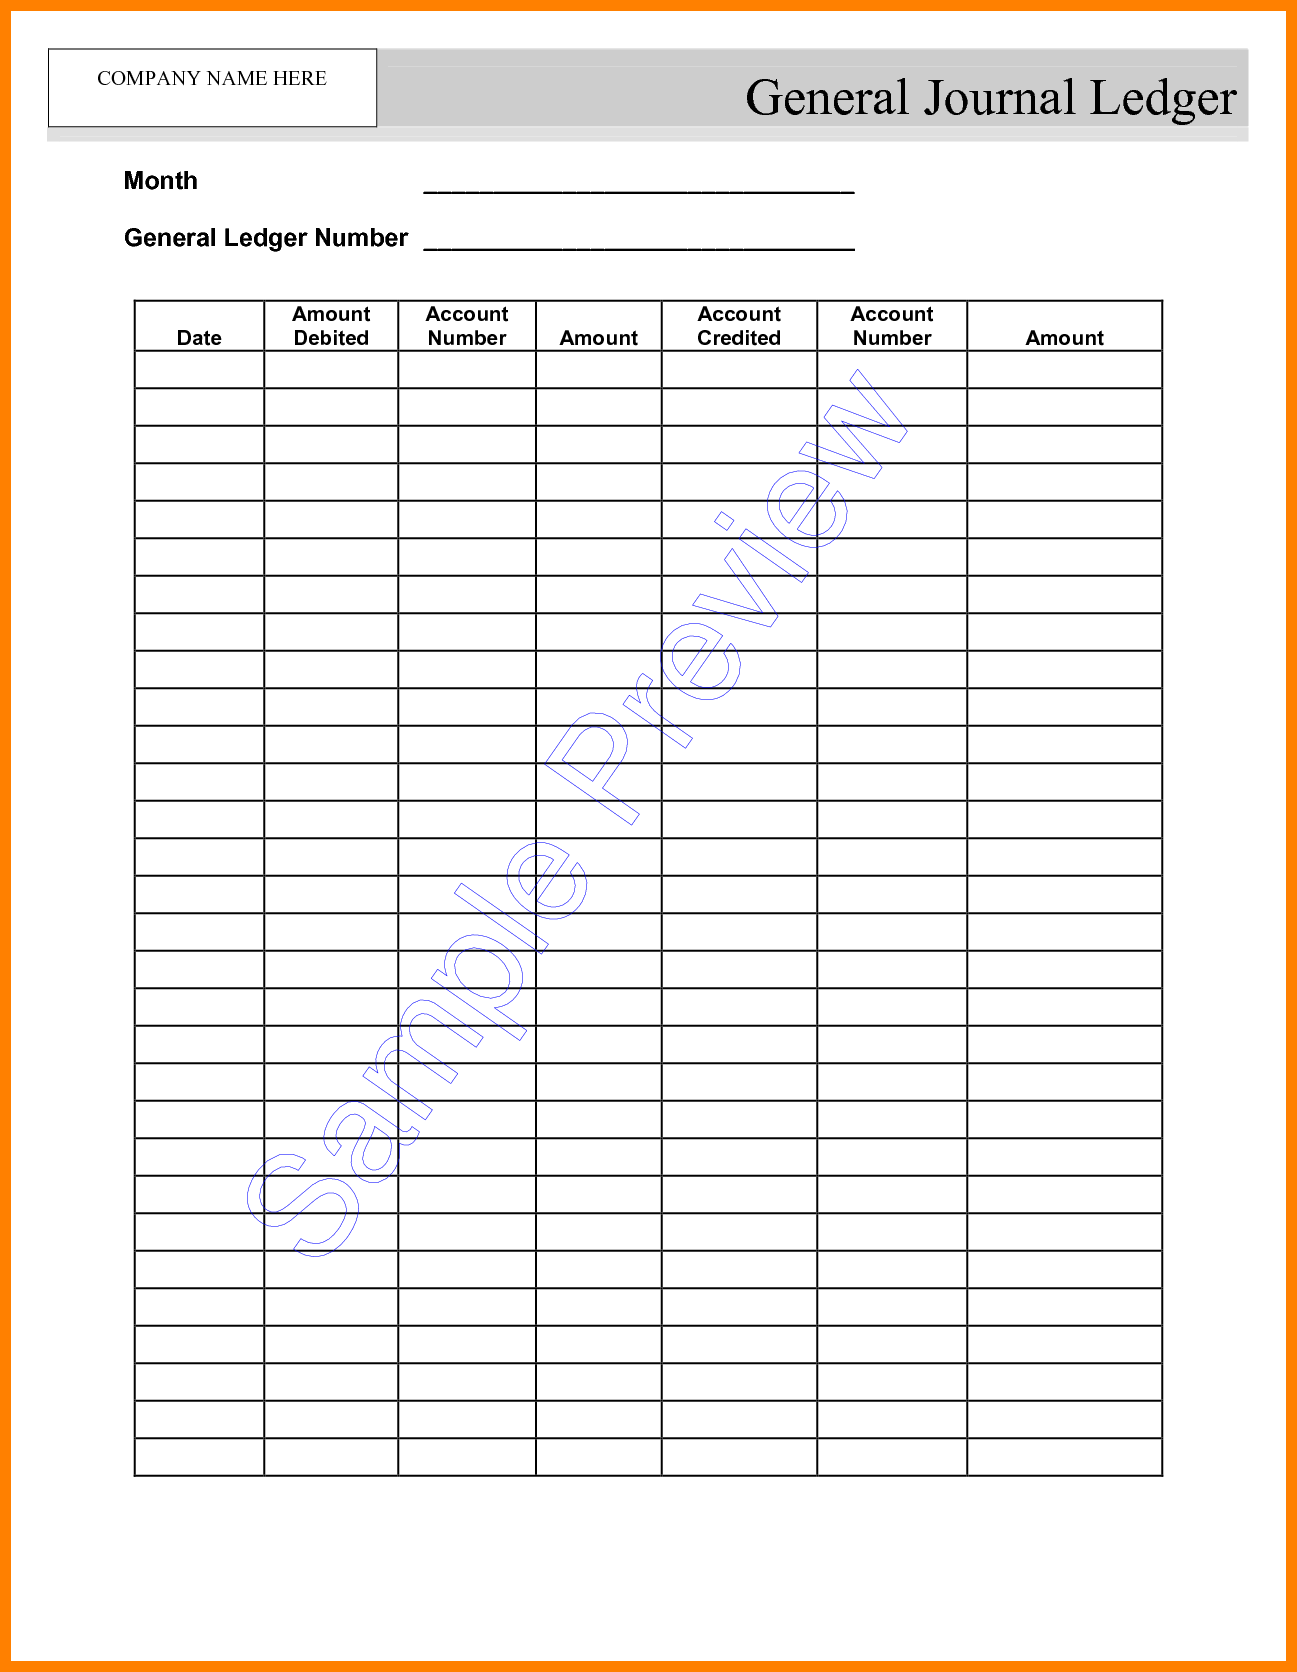 blank self employment ledger sheets Google Search | Concepts